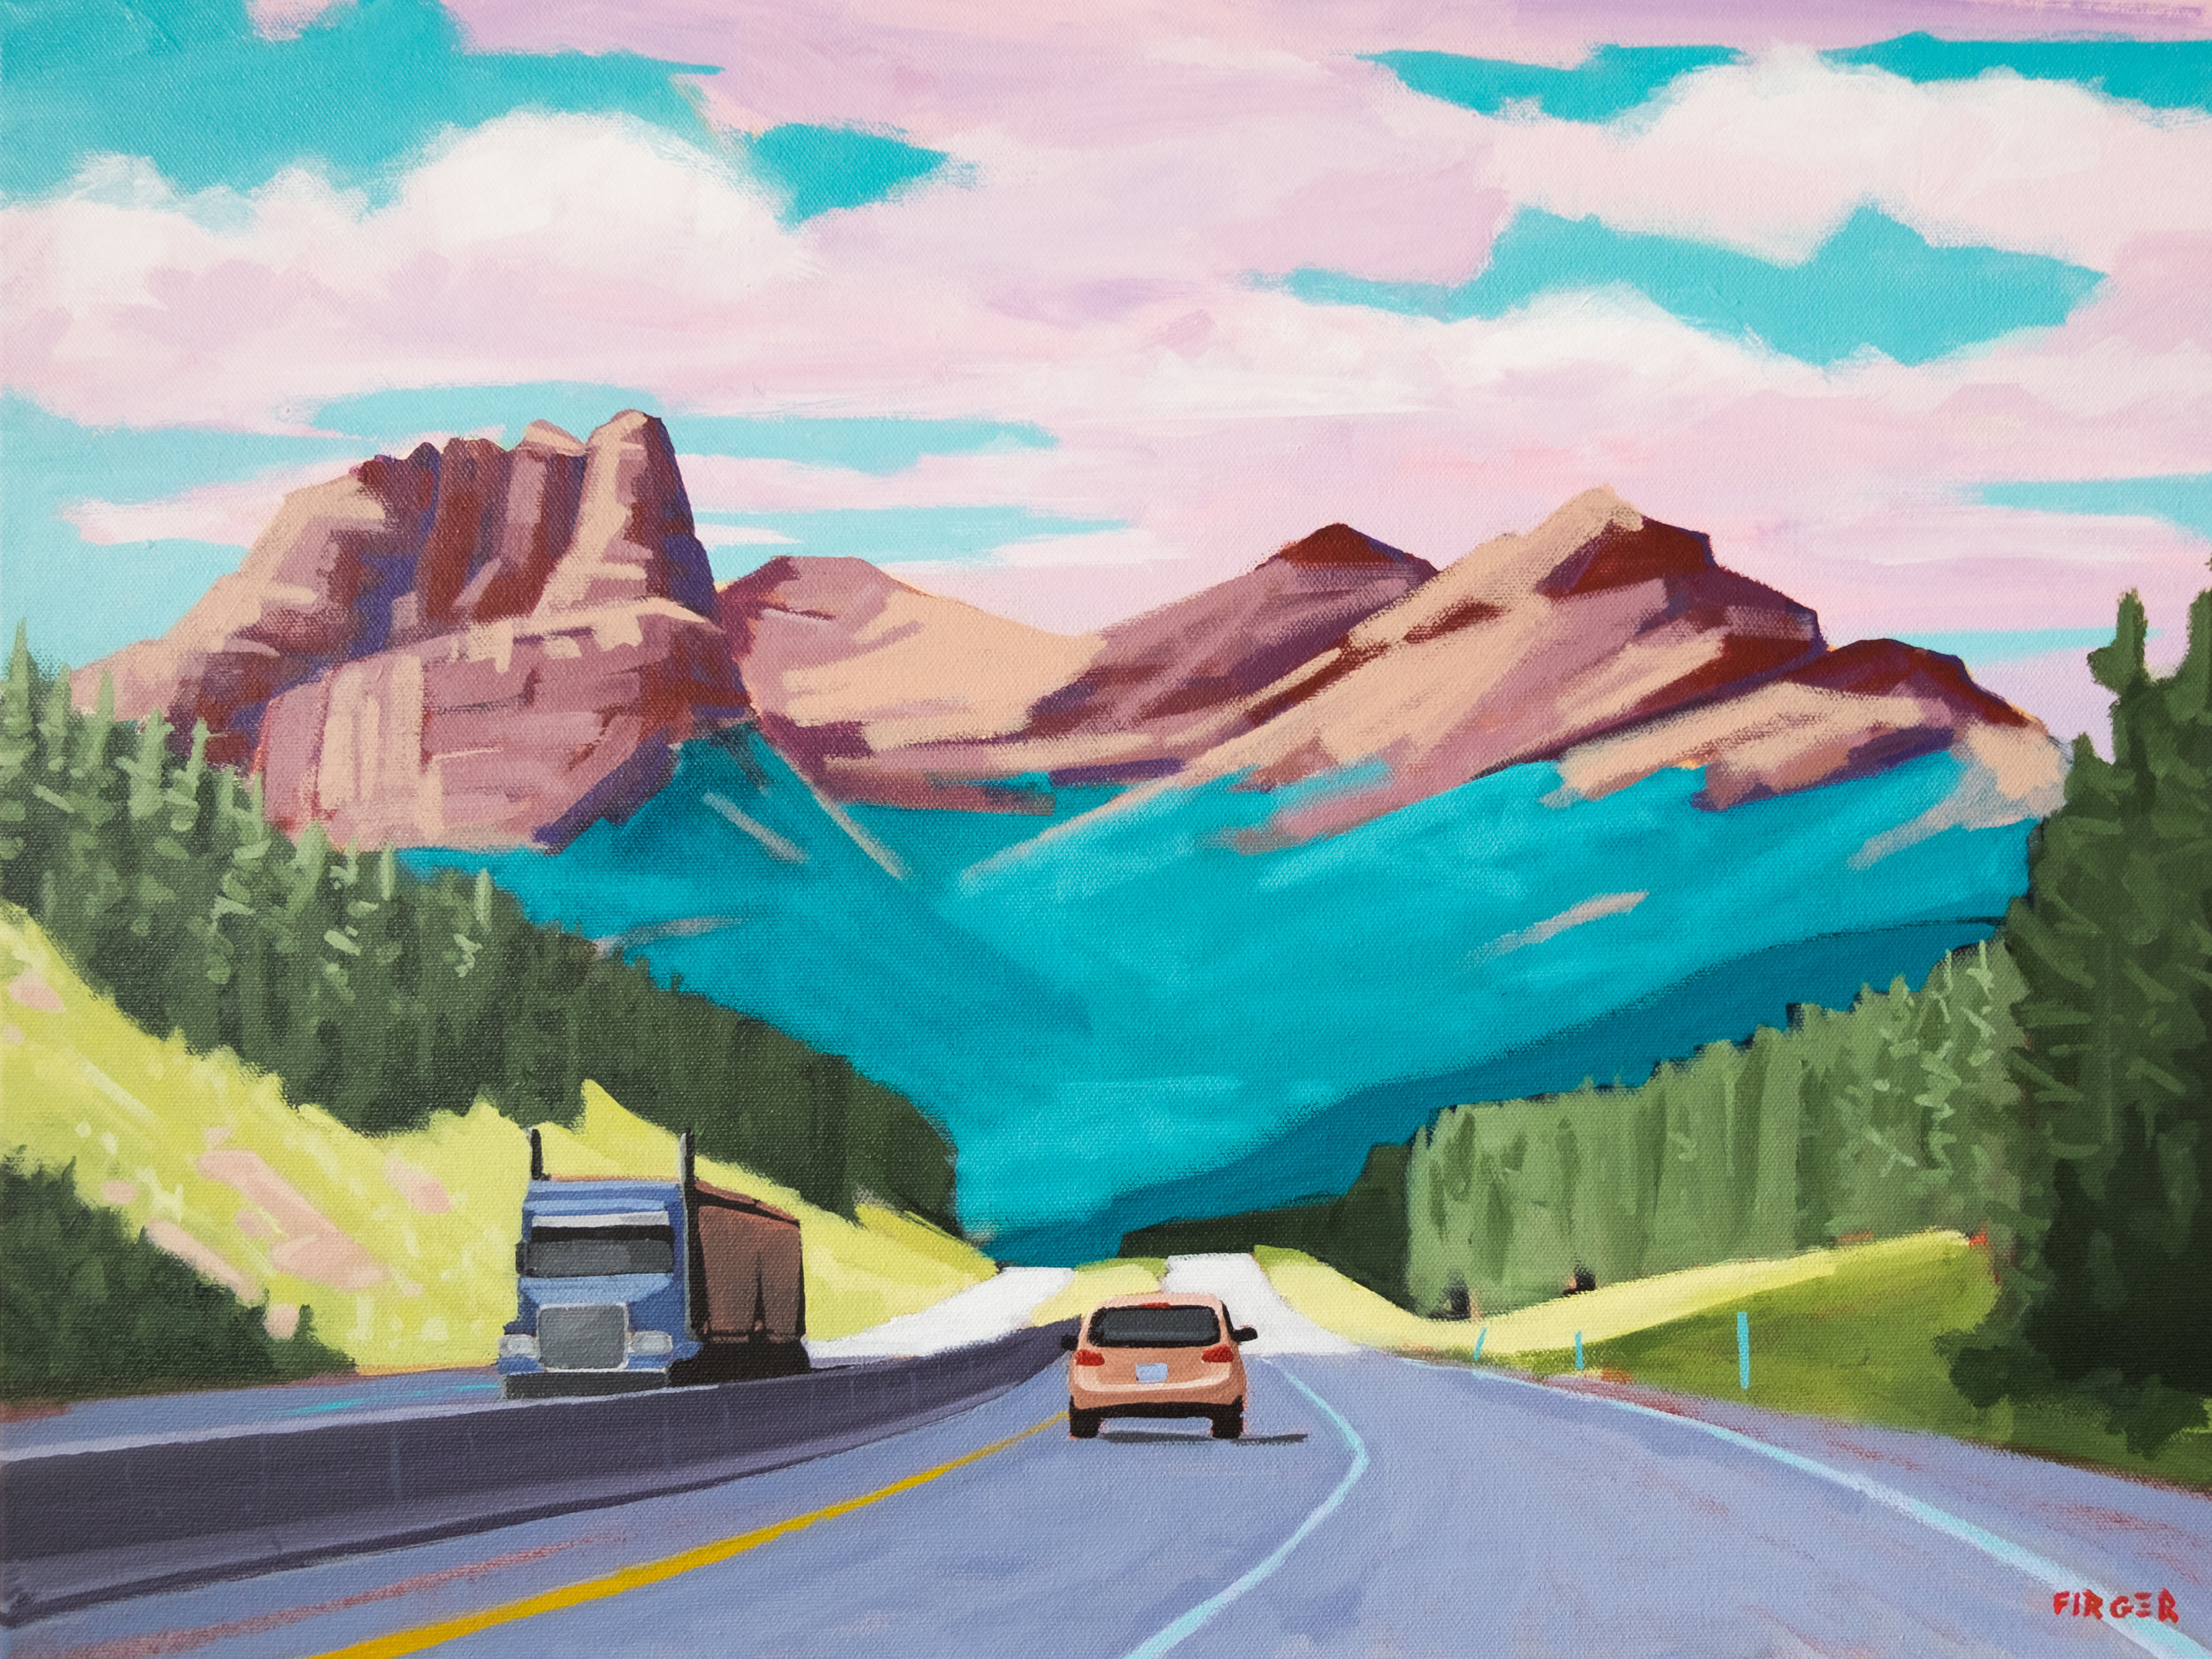 Road Trip - 18 x 24, Acrylic on Canvas (SOLD)